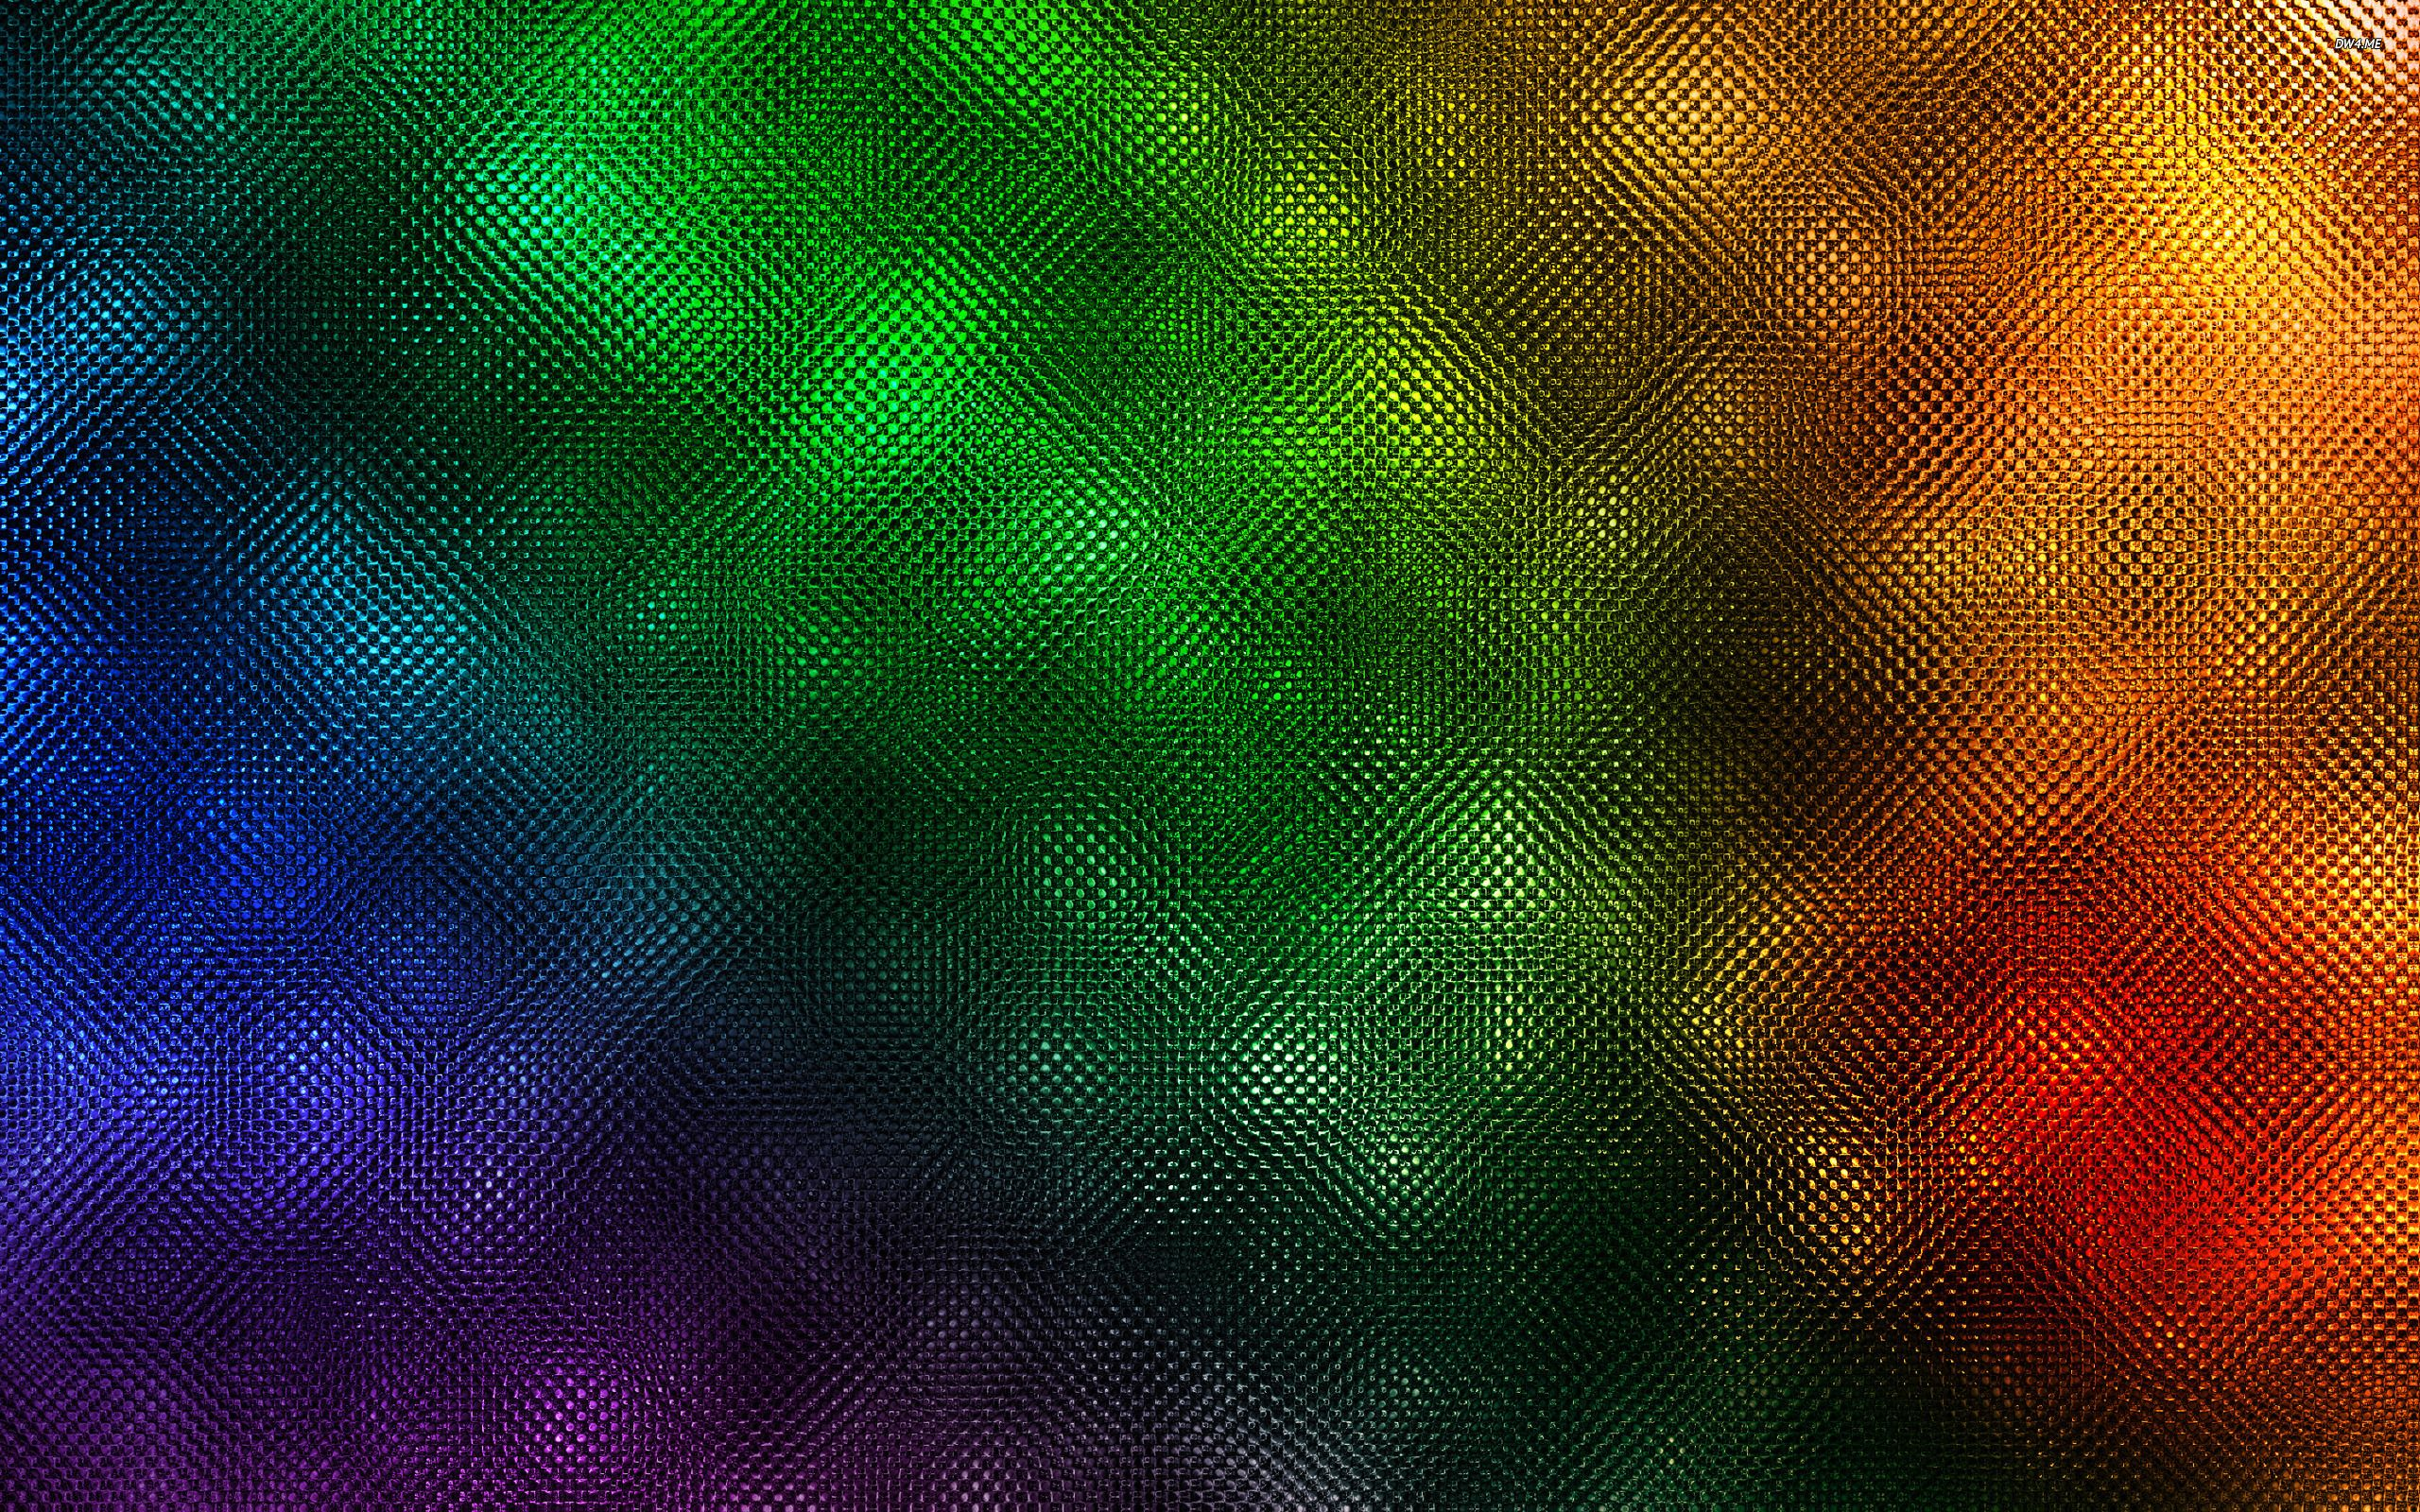 2560x1600 Colorful carbon fiber pattern wallpaper - Abstract wallpapers - #1918